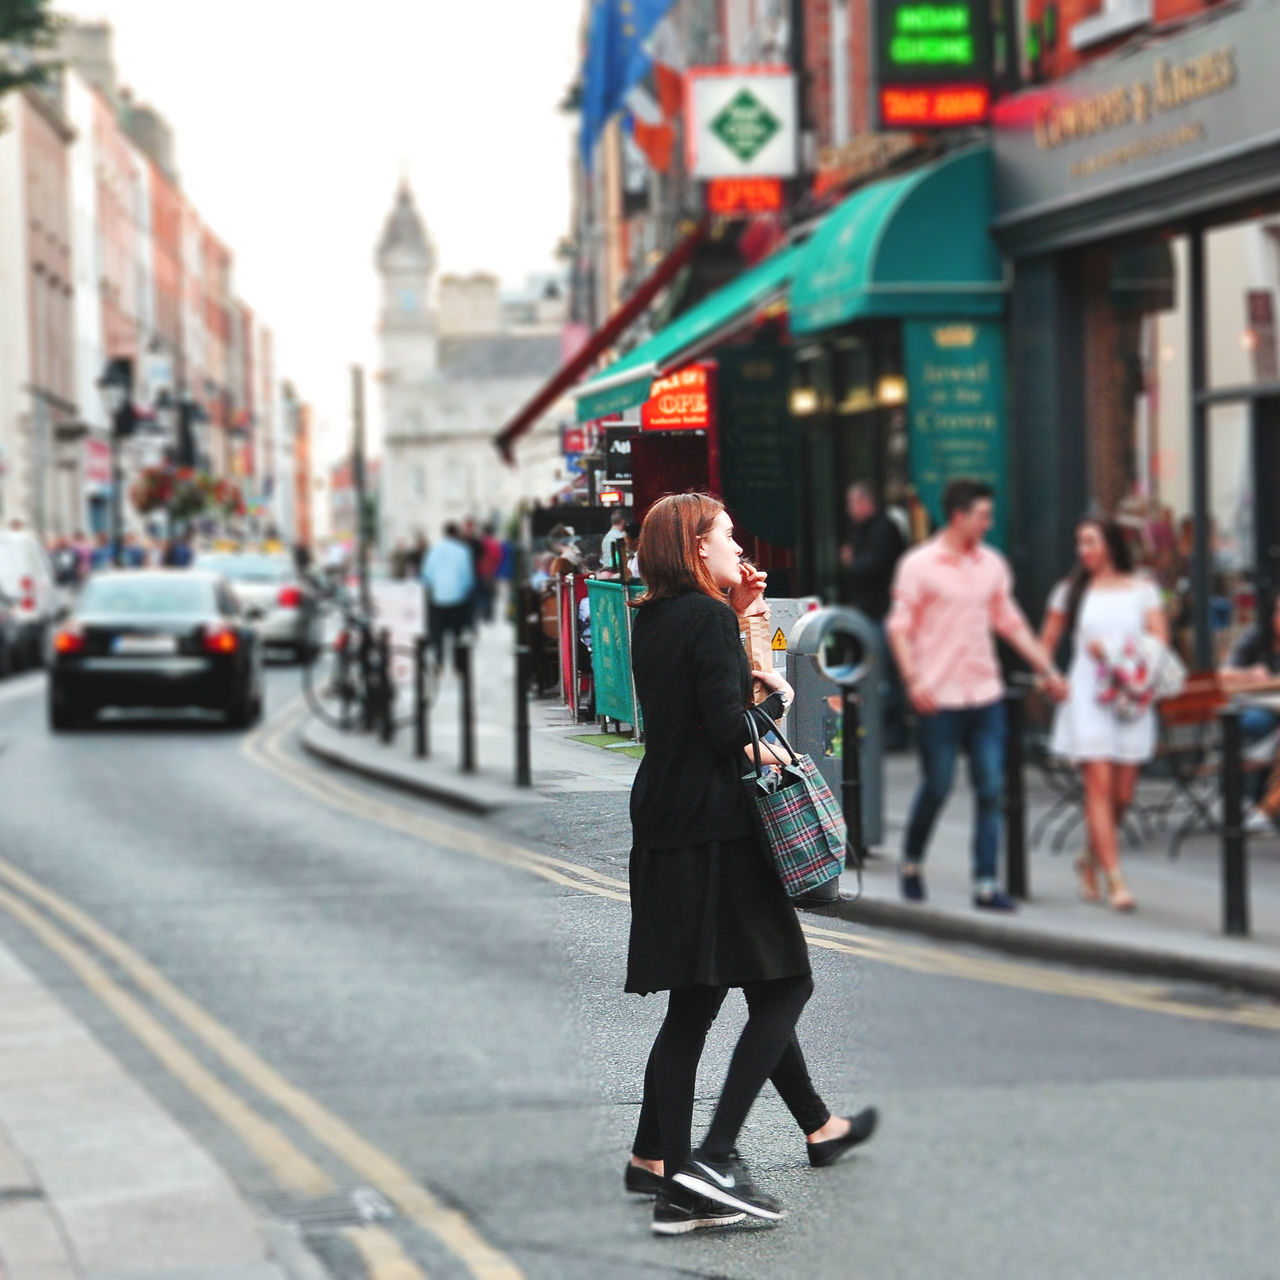 Beautiful stock photos of irland, street, road, full length, city